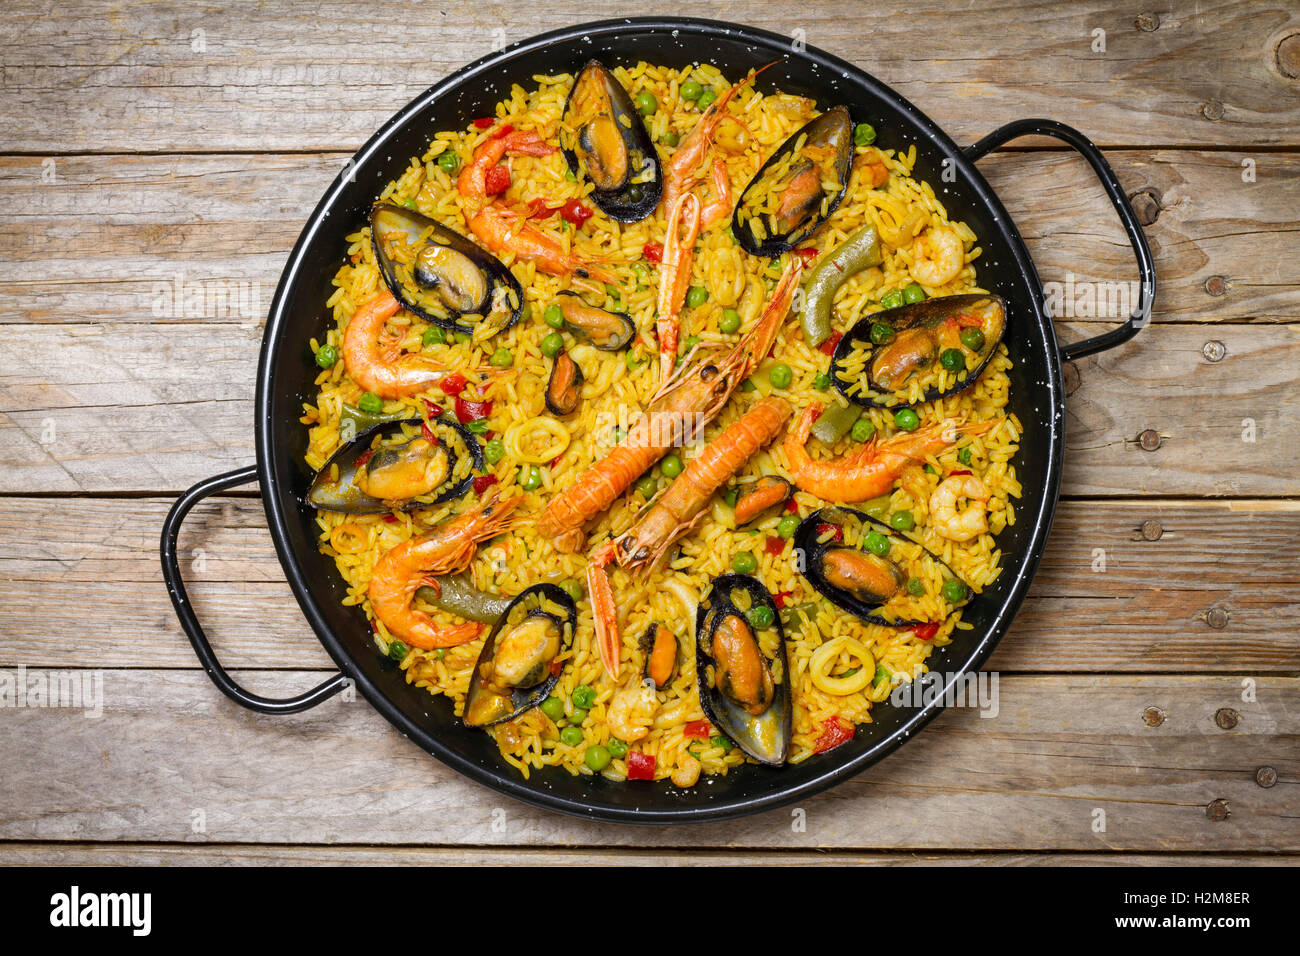 Spanish paella on an antique wooden table - Stock Image